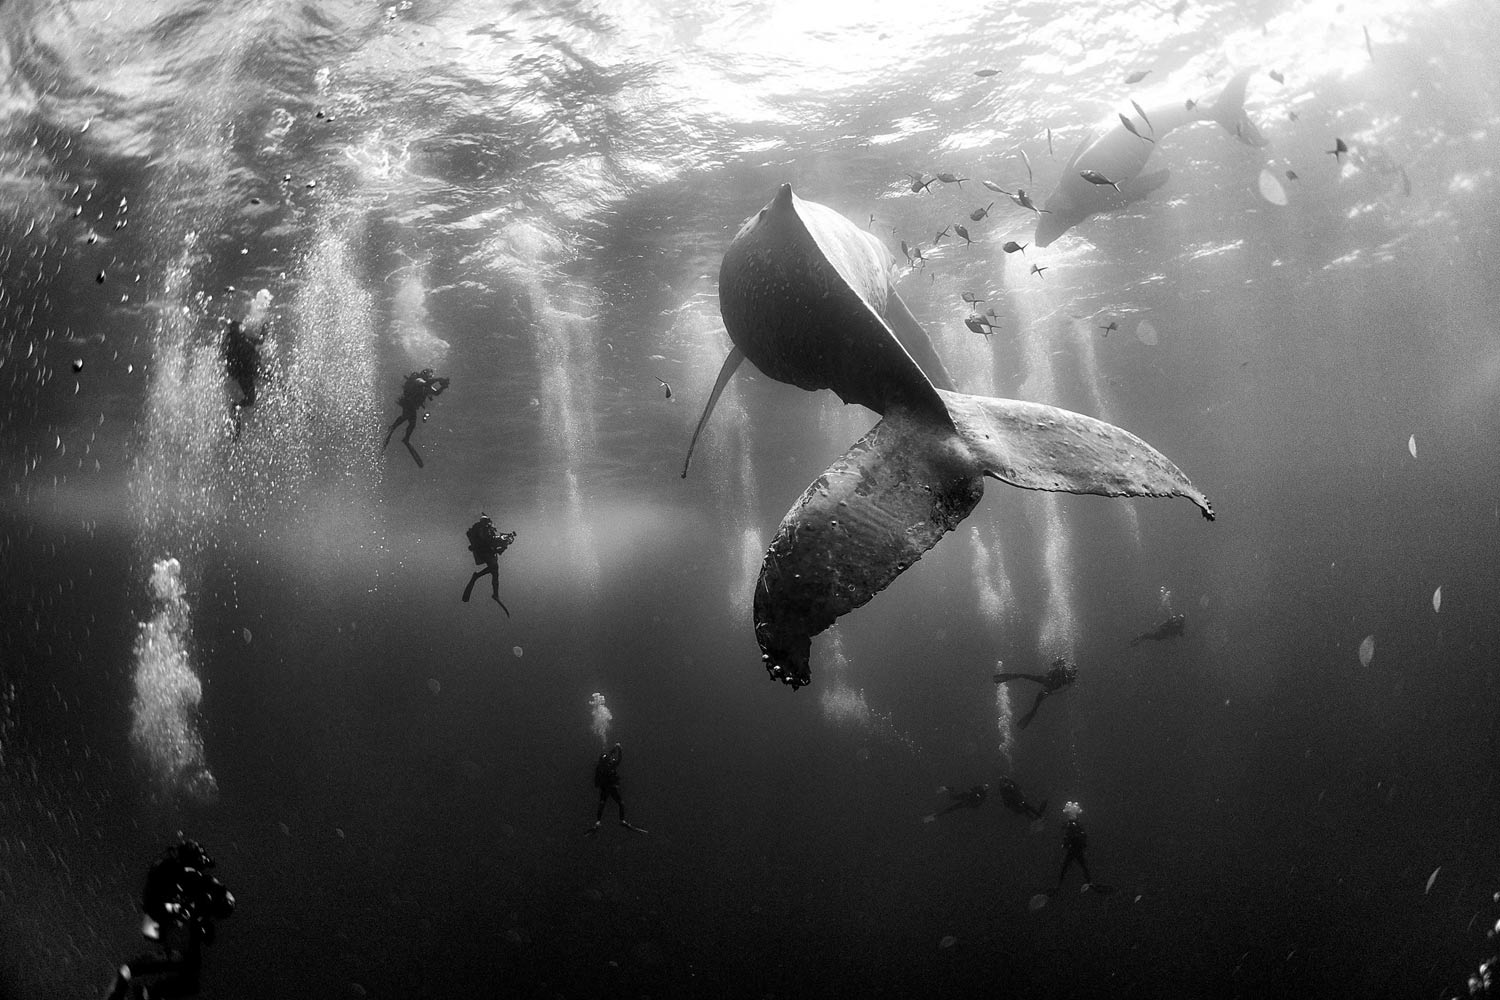 press contest winners hypebeast whale winning winner patjane anuar nature prize photographer foto divers premio whisperers sea under photograph whales